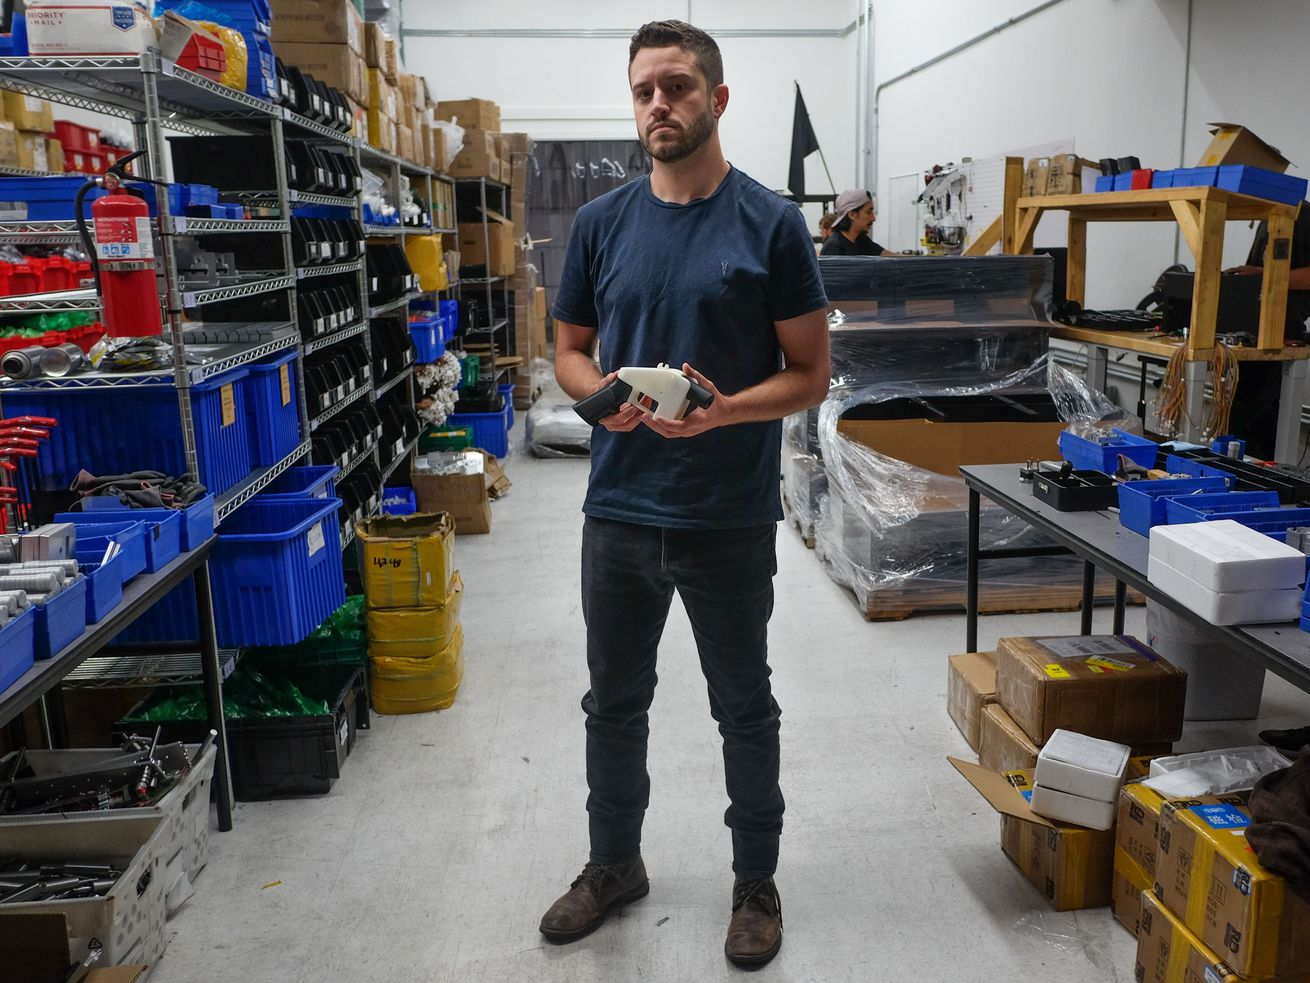 Cody Wilson, libertarian activist and owner of Defense Distributed, holds up a 3D-printed gun that he designed.